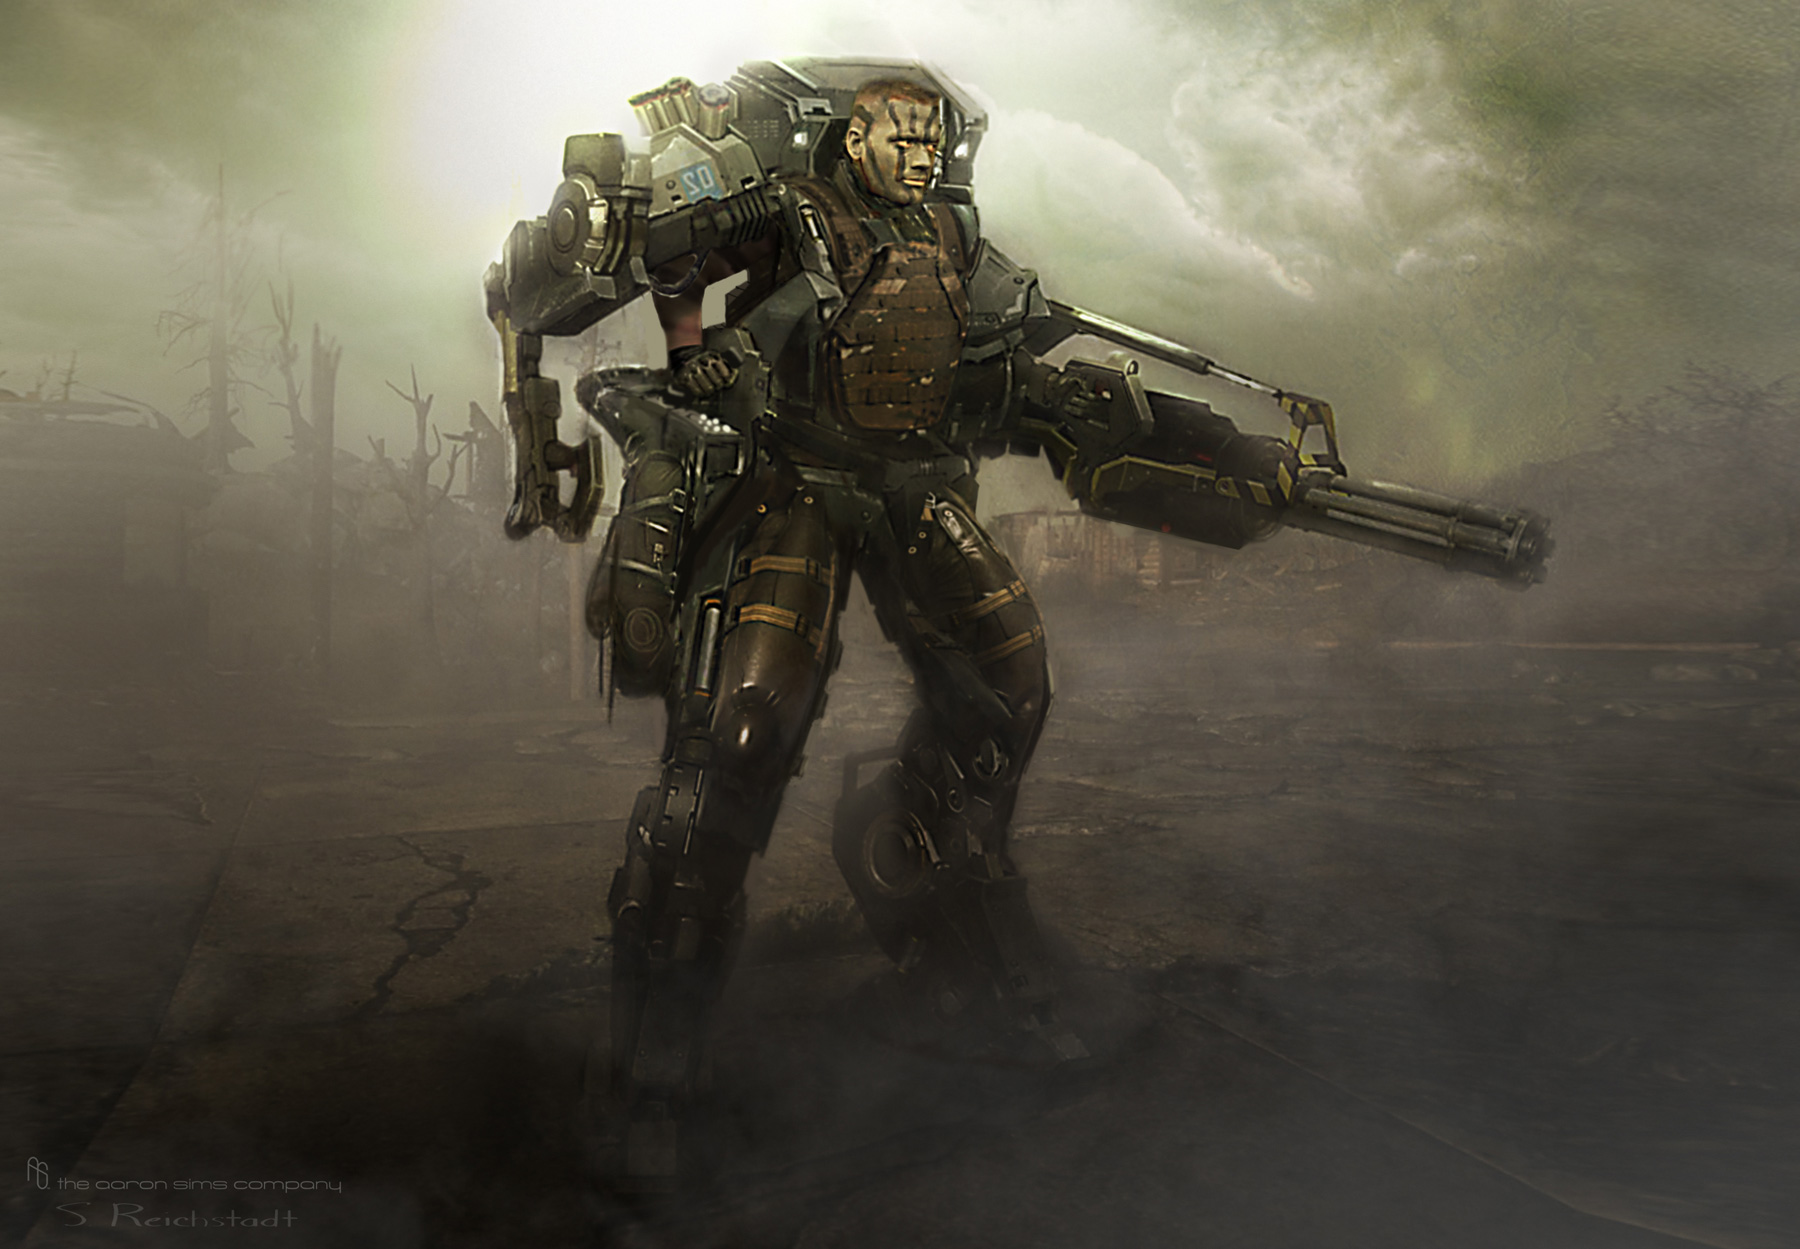 Edge of Tomorrow Concept Art by The Aaron Sims Company (4 pics)